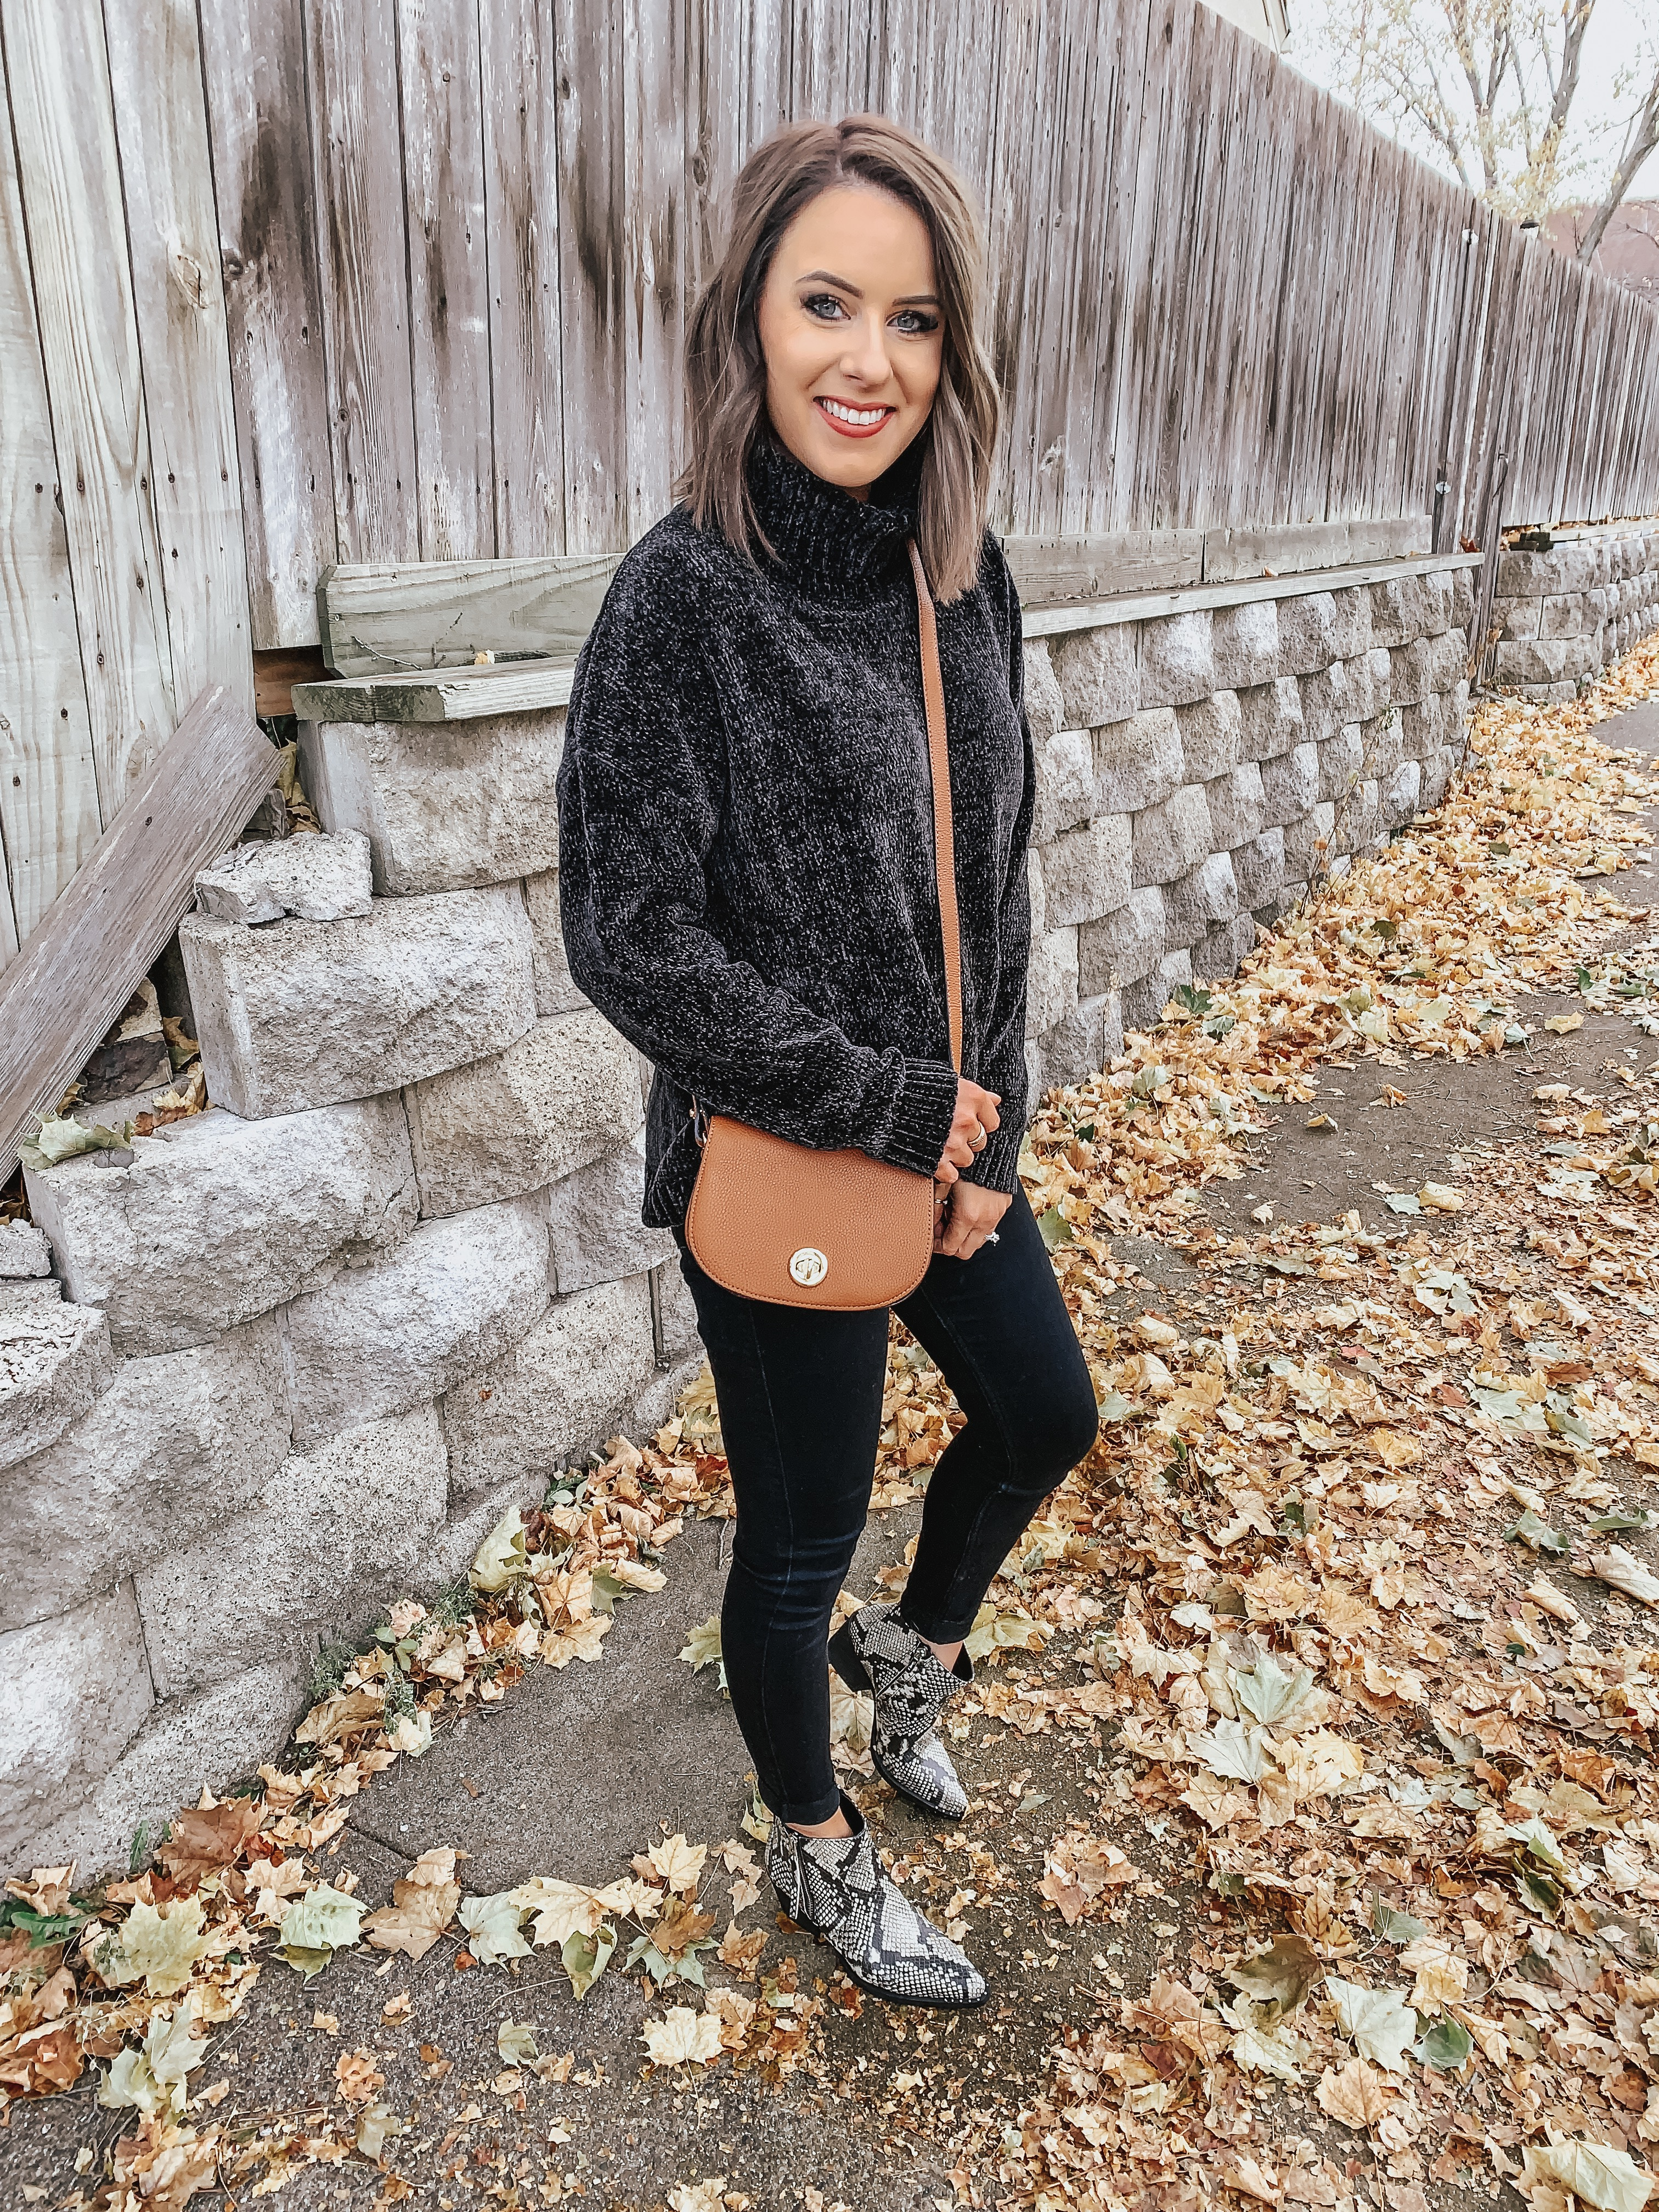 All Black Outfit from Walmart | Holiday Outfit from Walmart | Style Blogger Lauren Meyer shares an All Black Outfit from Walmart